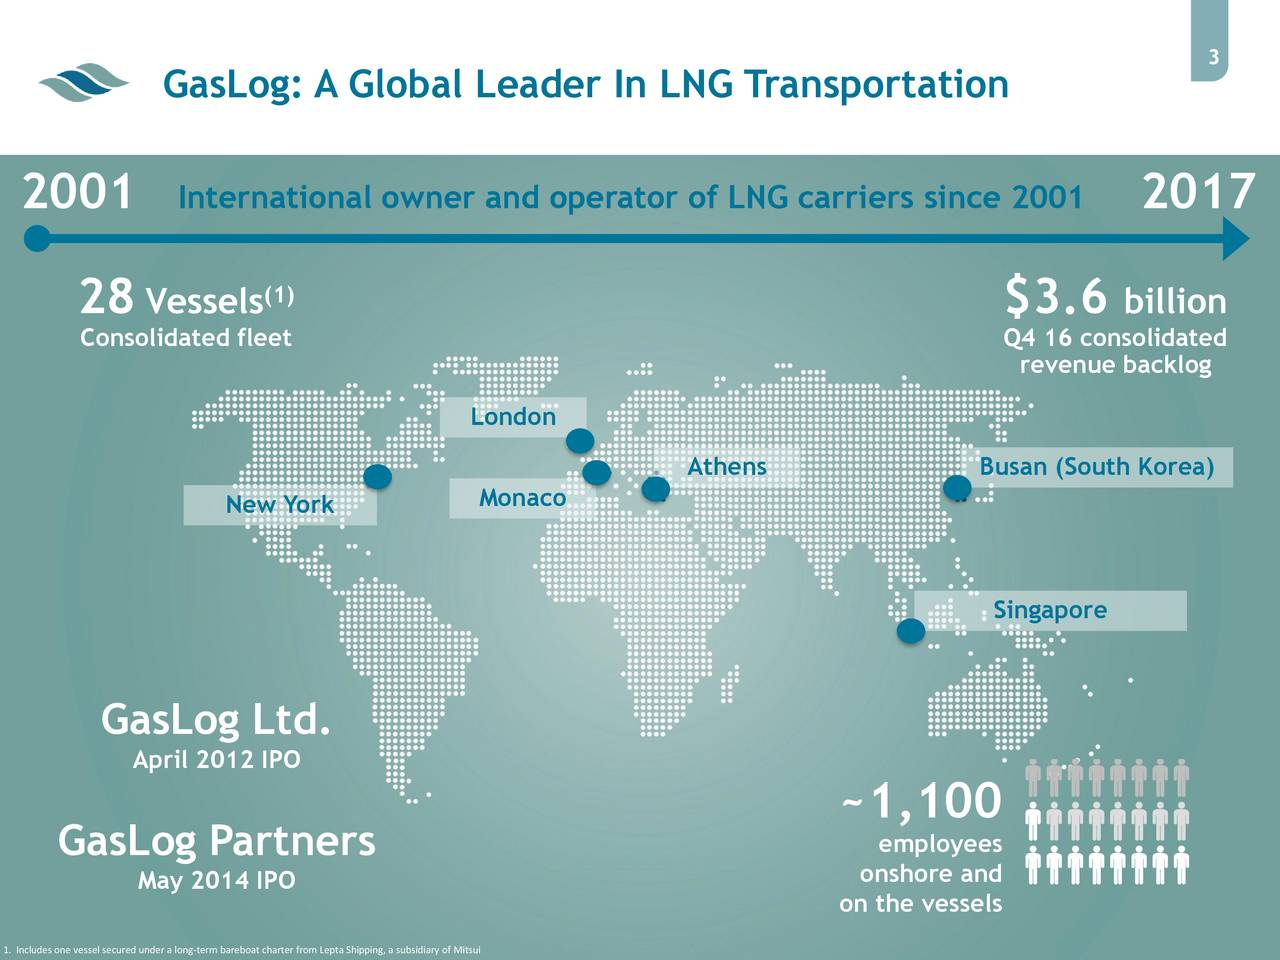 GasLog: A Global Leader In LNG Transportation 2001 International owner and operator of LNG carriers since 2001 2017 (1) 28 Vessels $3.6 billion Consolidated fleet Q4 16 consolidated revenue backlog London Athens Busan (South Korea) New York Monaco Singapore GasLog Ltd. April 2012 IPO ~1,100 GasLog Partners employees May 2014 IPO on the vessels